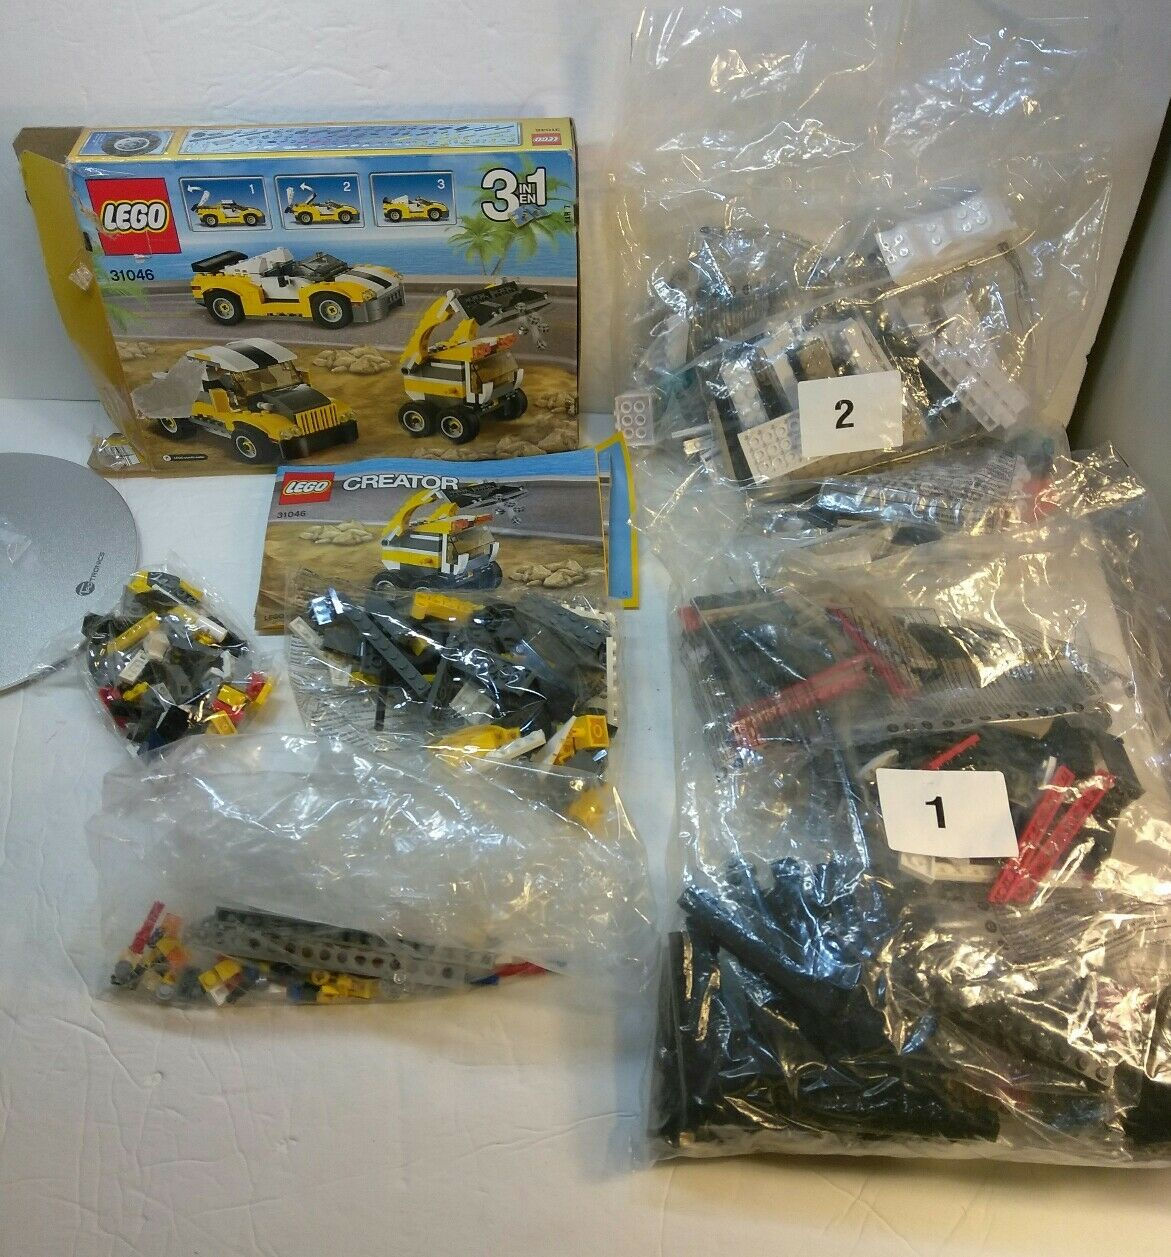 Lego 31046 Creator Fast Car  and two bags of Legos 5559 and 5564.